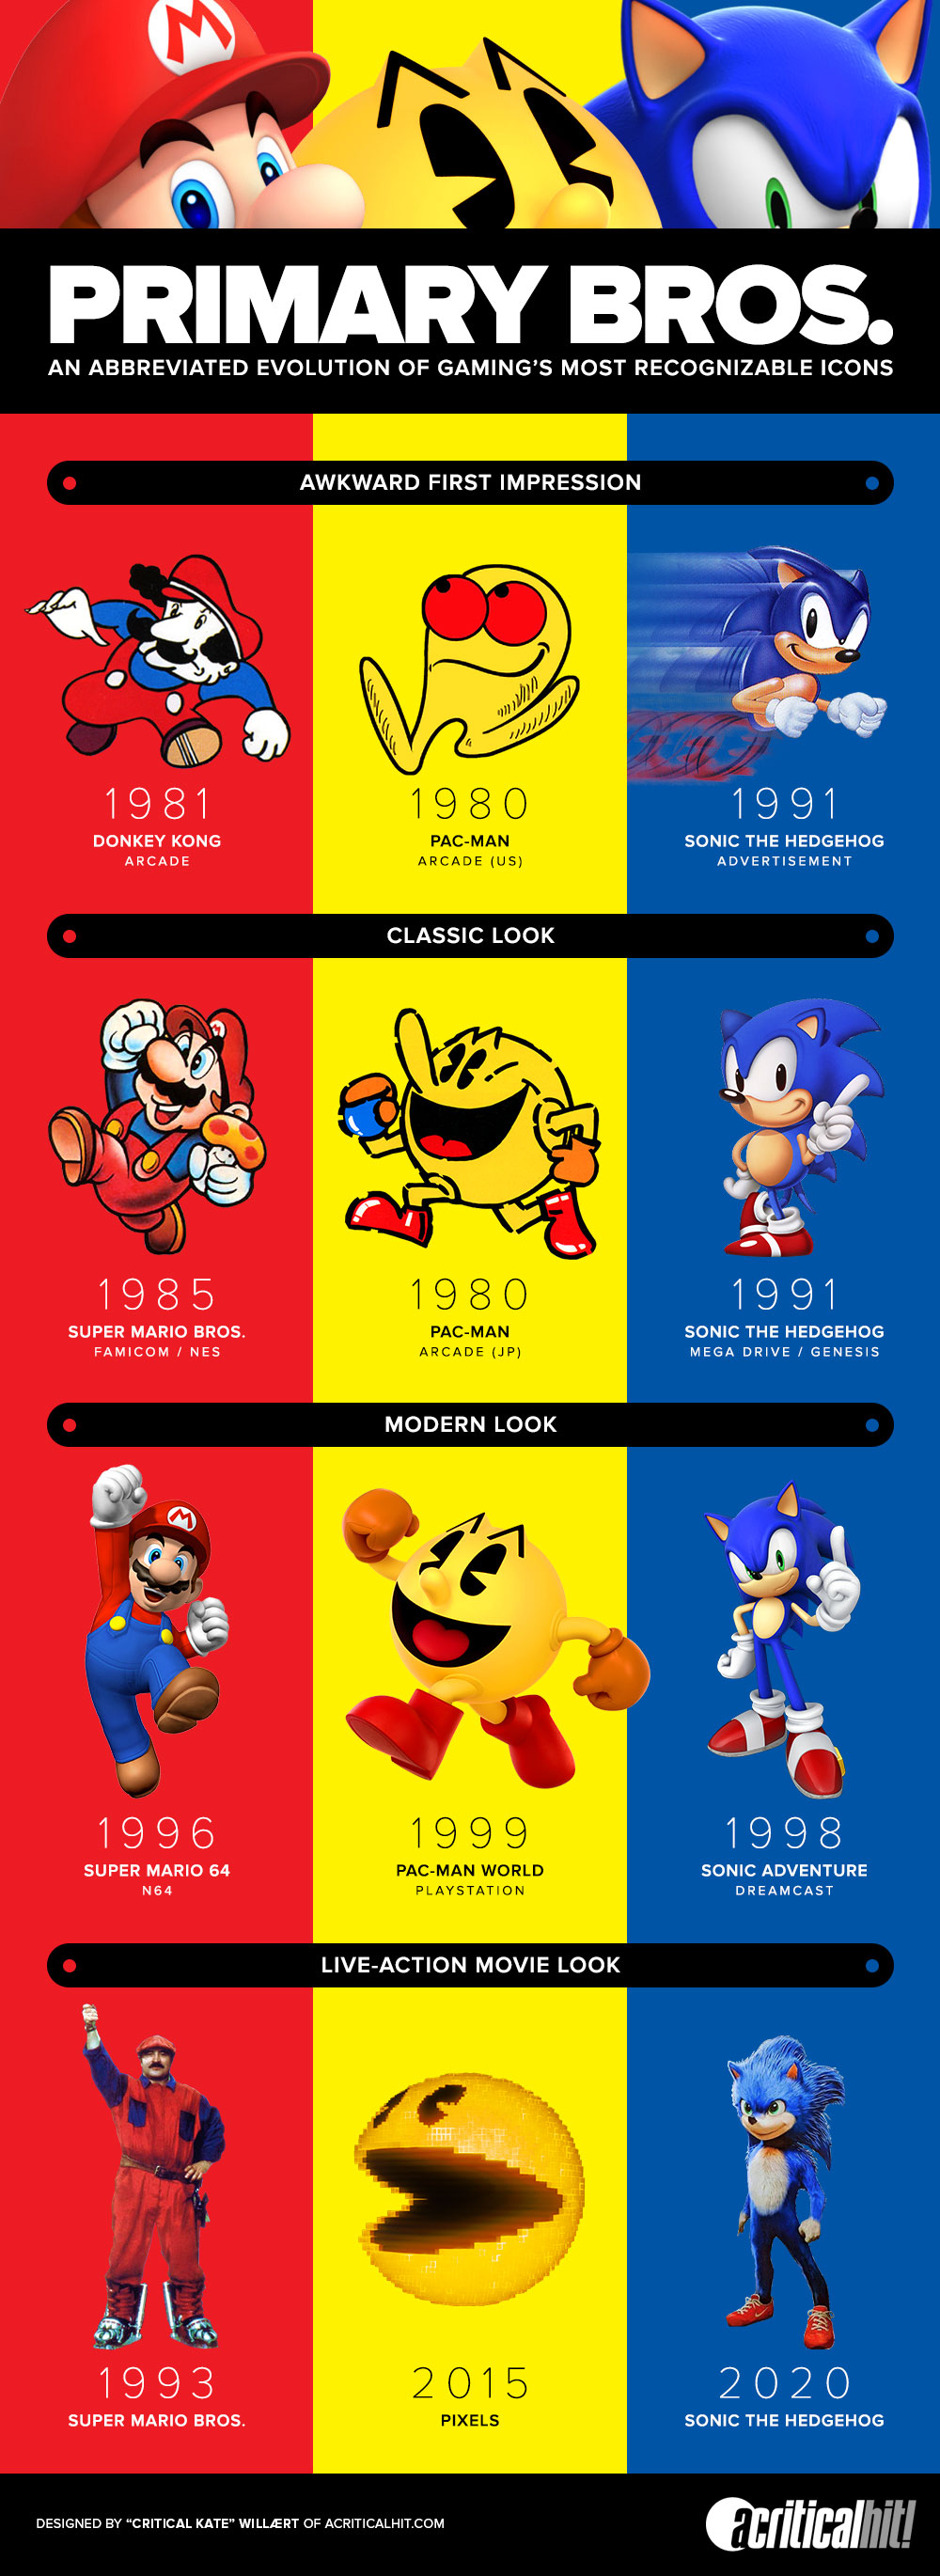 An infographic comparing the visual evolution of Super Mario, Pac-Man, and Sonic The Hedgehog.